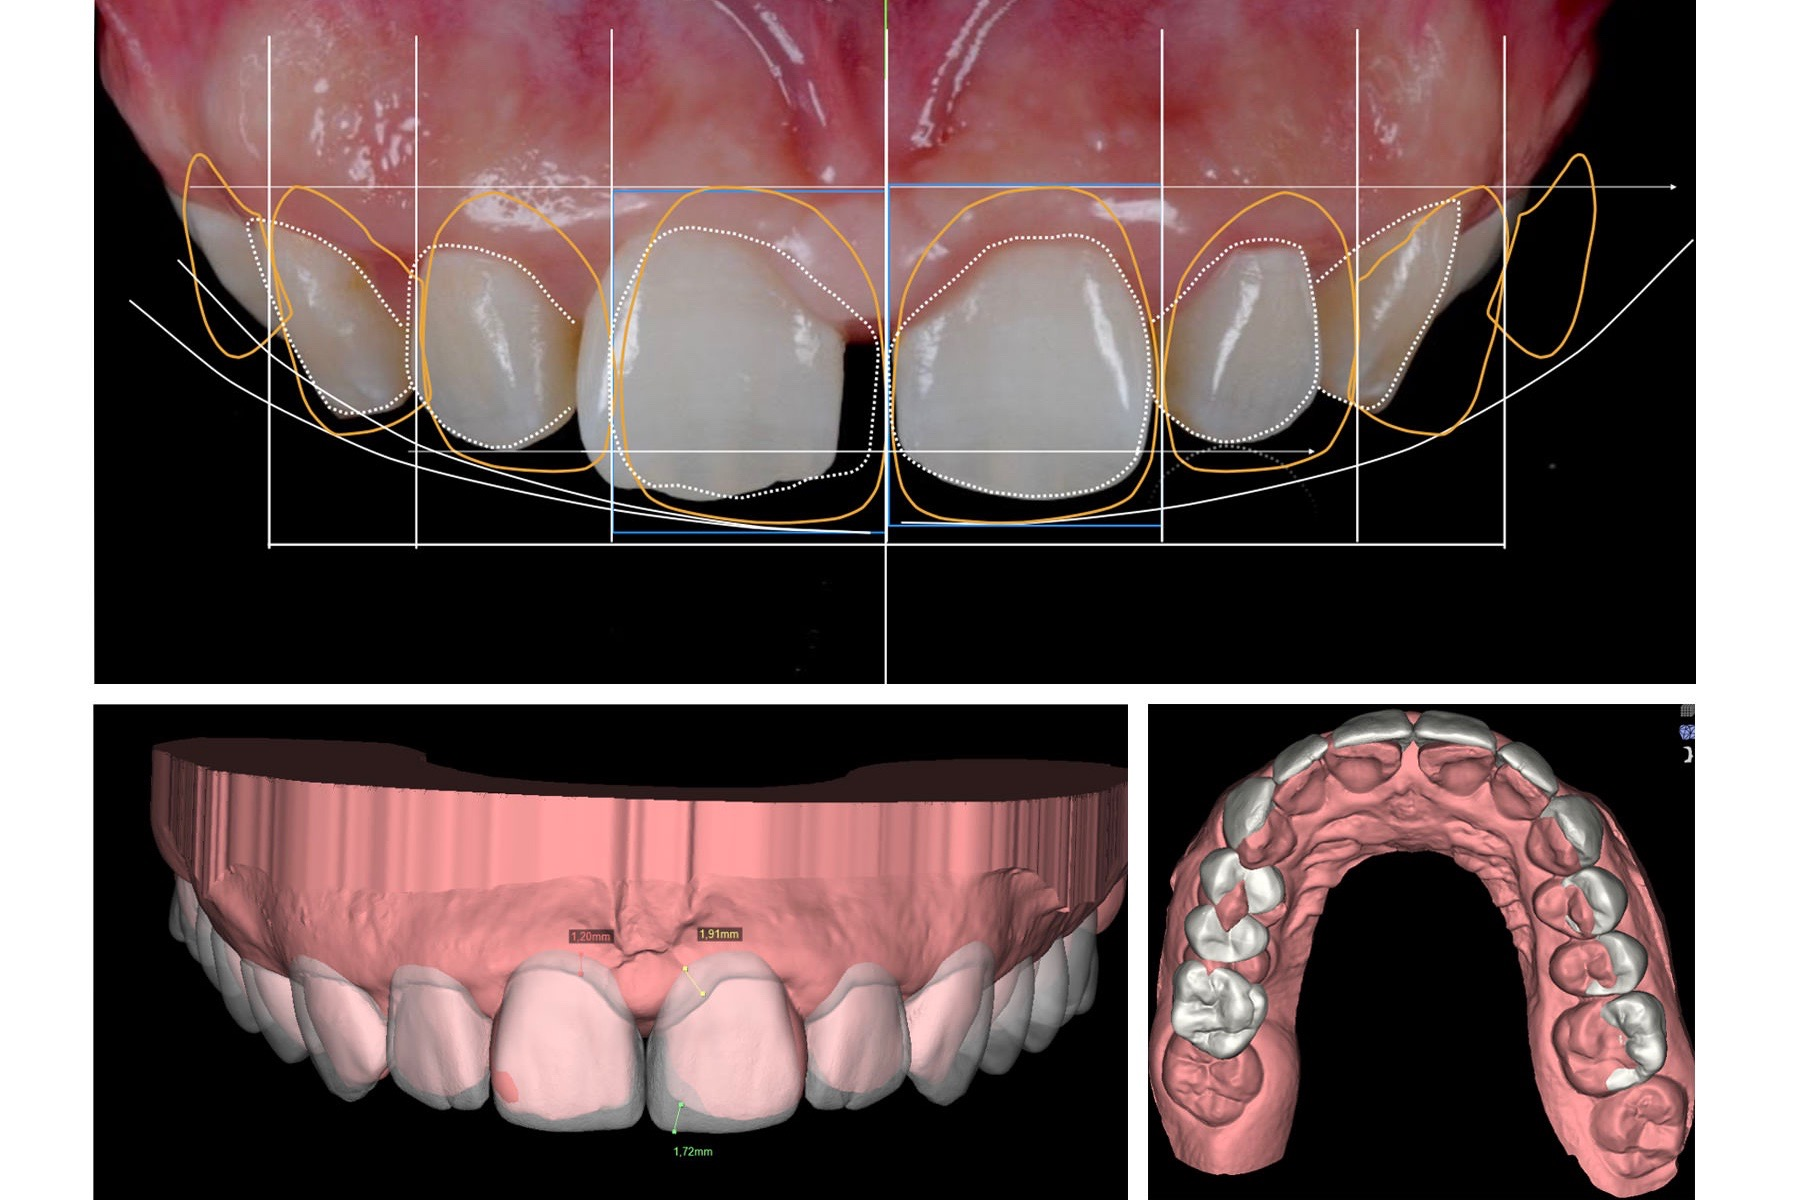 Example of a 3D scan of the patients teeth and the digital smile design mockup super imposed on the digital model.